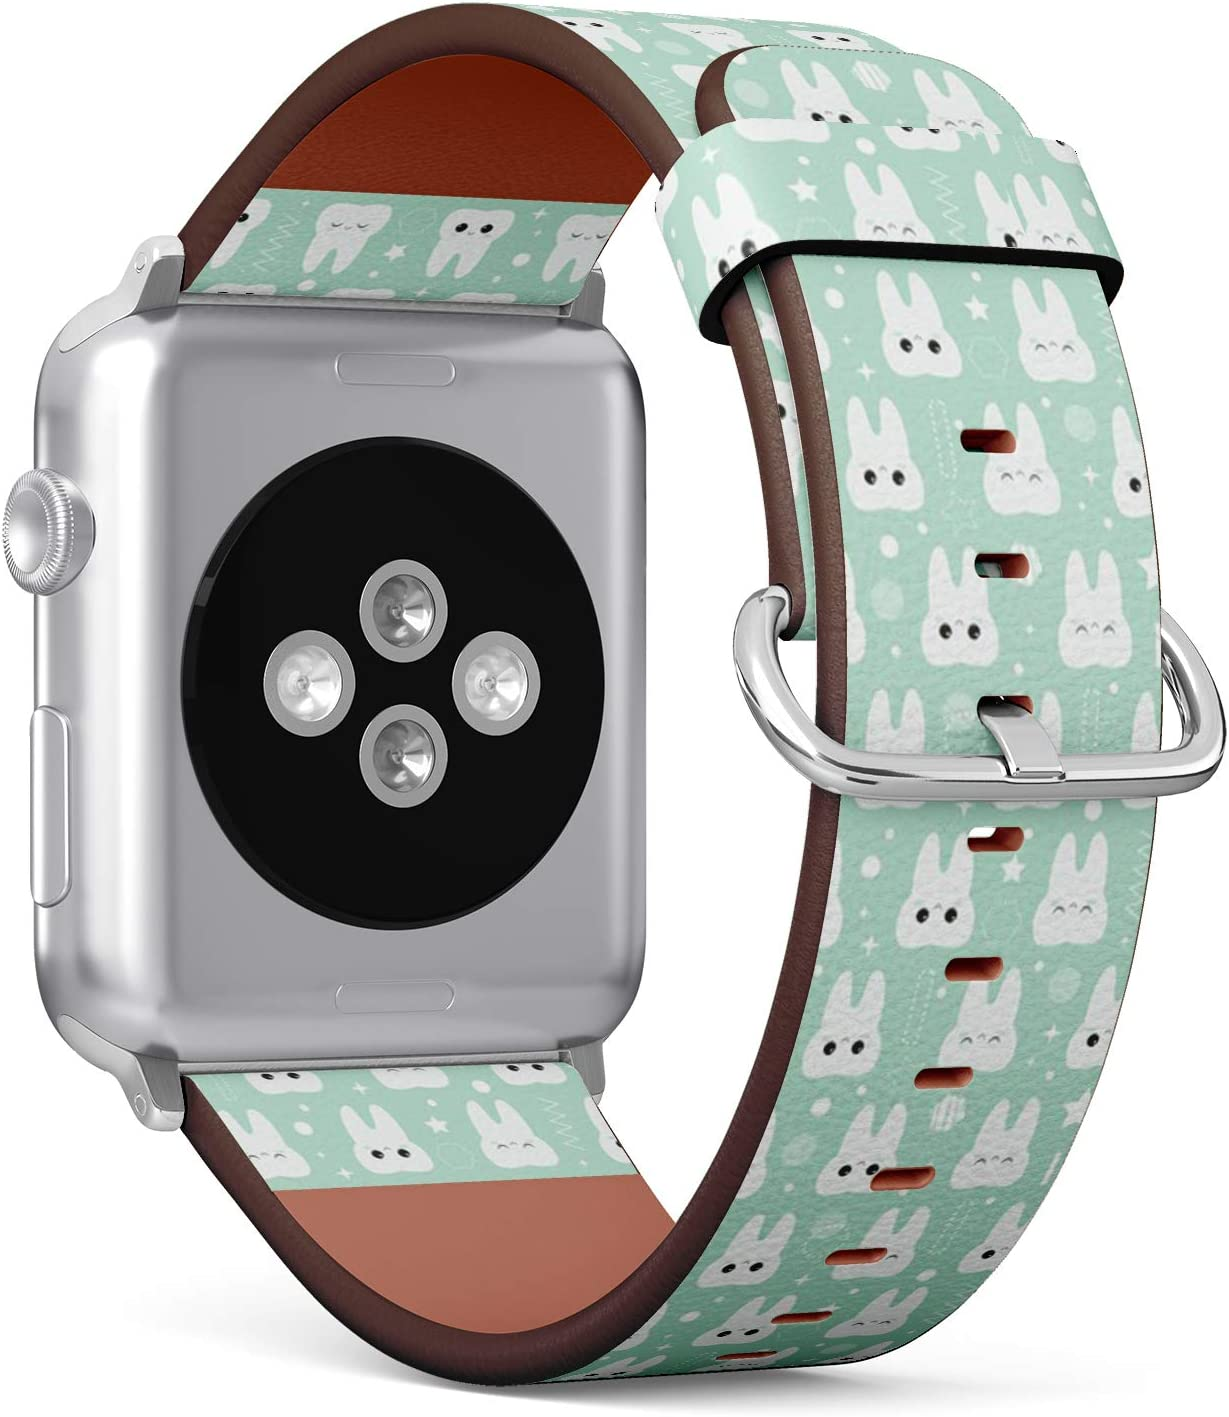 Compatible with Small Apple Watch 38mm & 40mm (Series 5, 4, 3, 2, 1) Leather Watch Wrist Band Strap Bracelet with Stainless Steel Clasp and Adapters (Teeth Dentistry Health Care Cute)